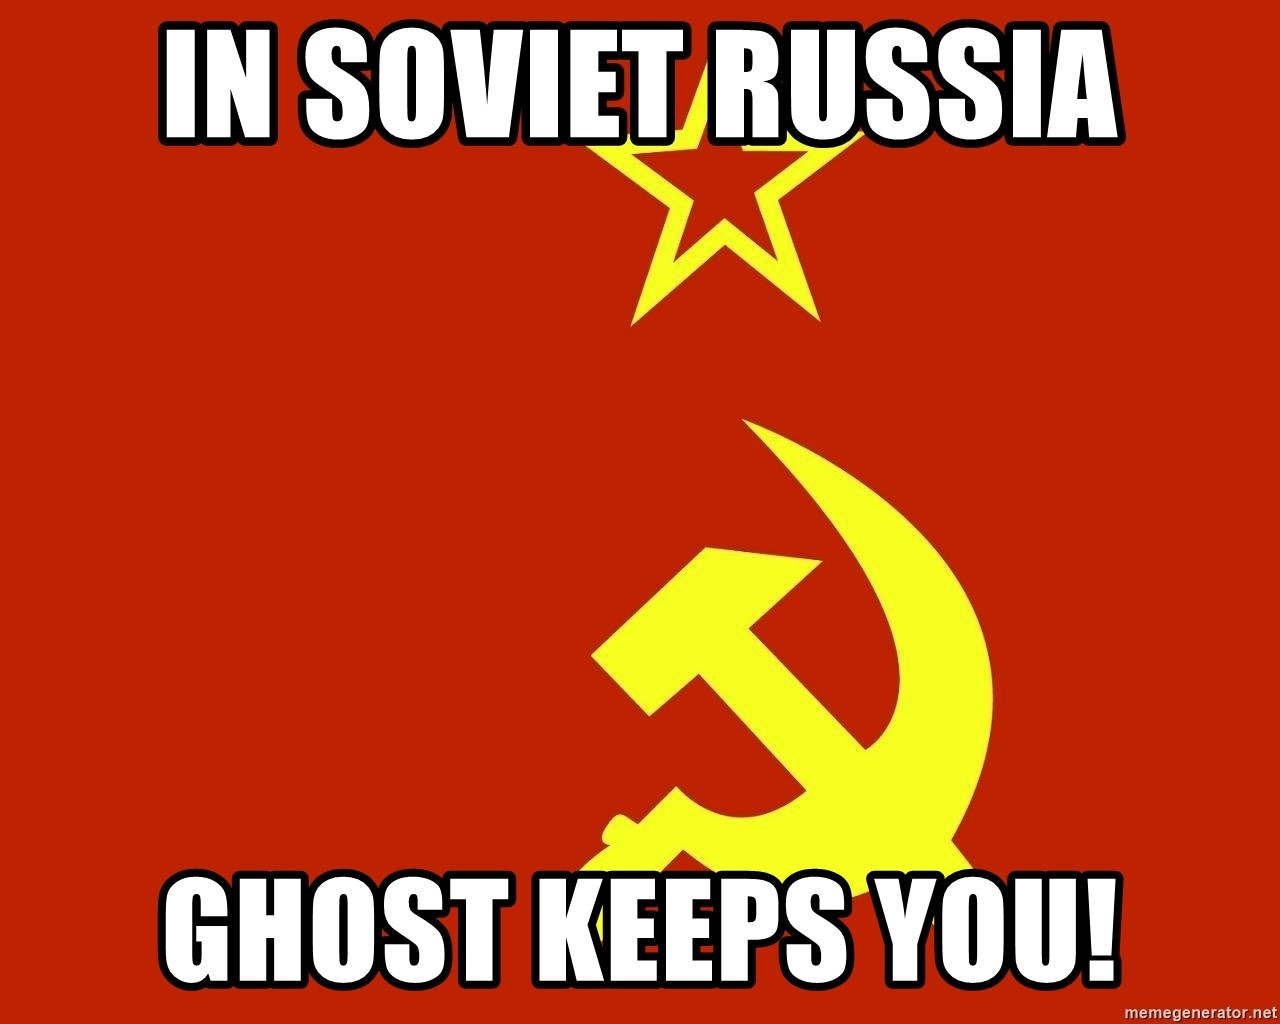 In Soviet Russia - IN SOVIET RUSSIA GHOST KEEPS YOU!